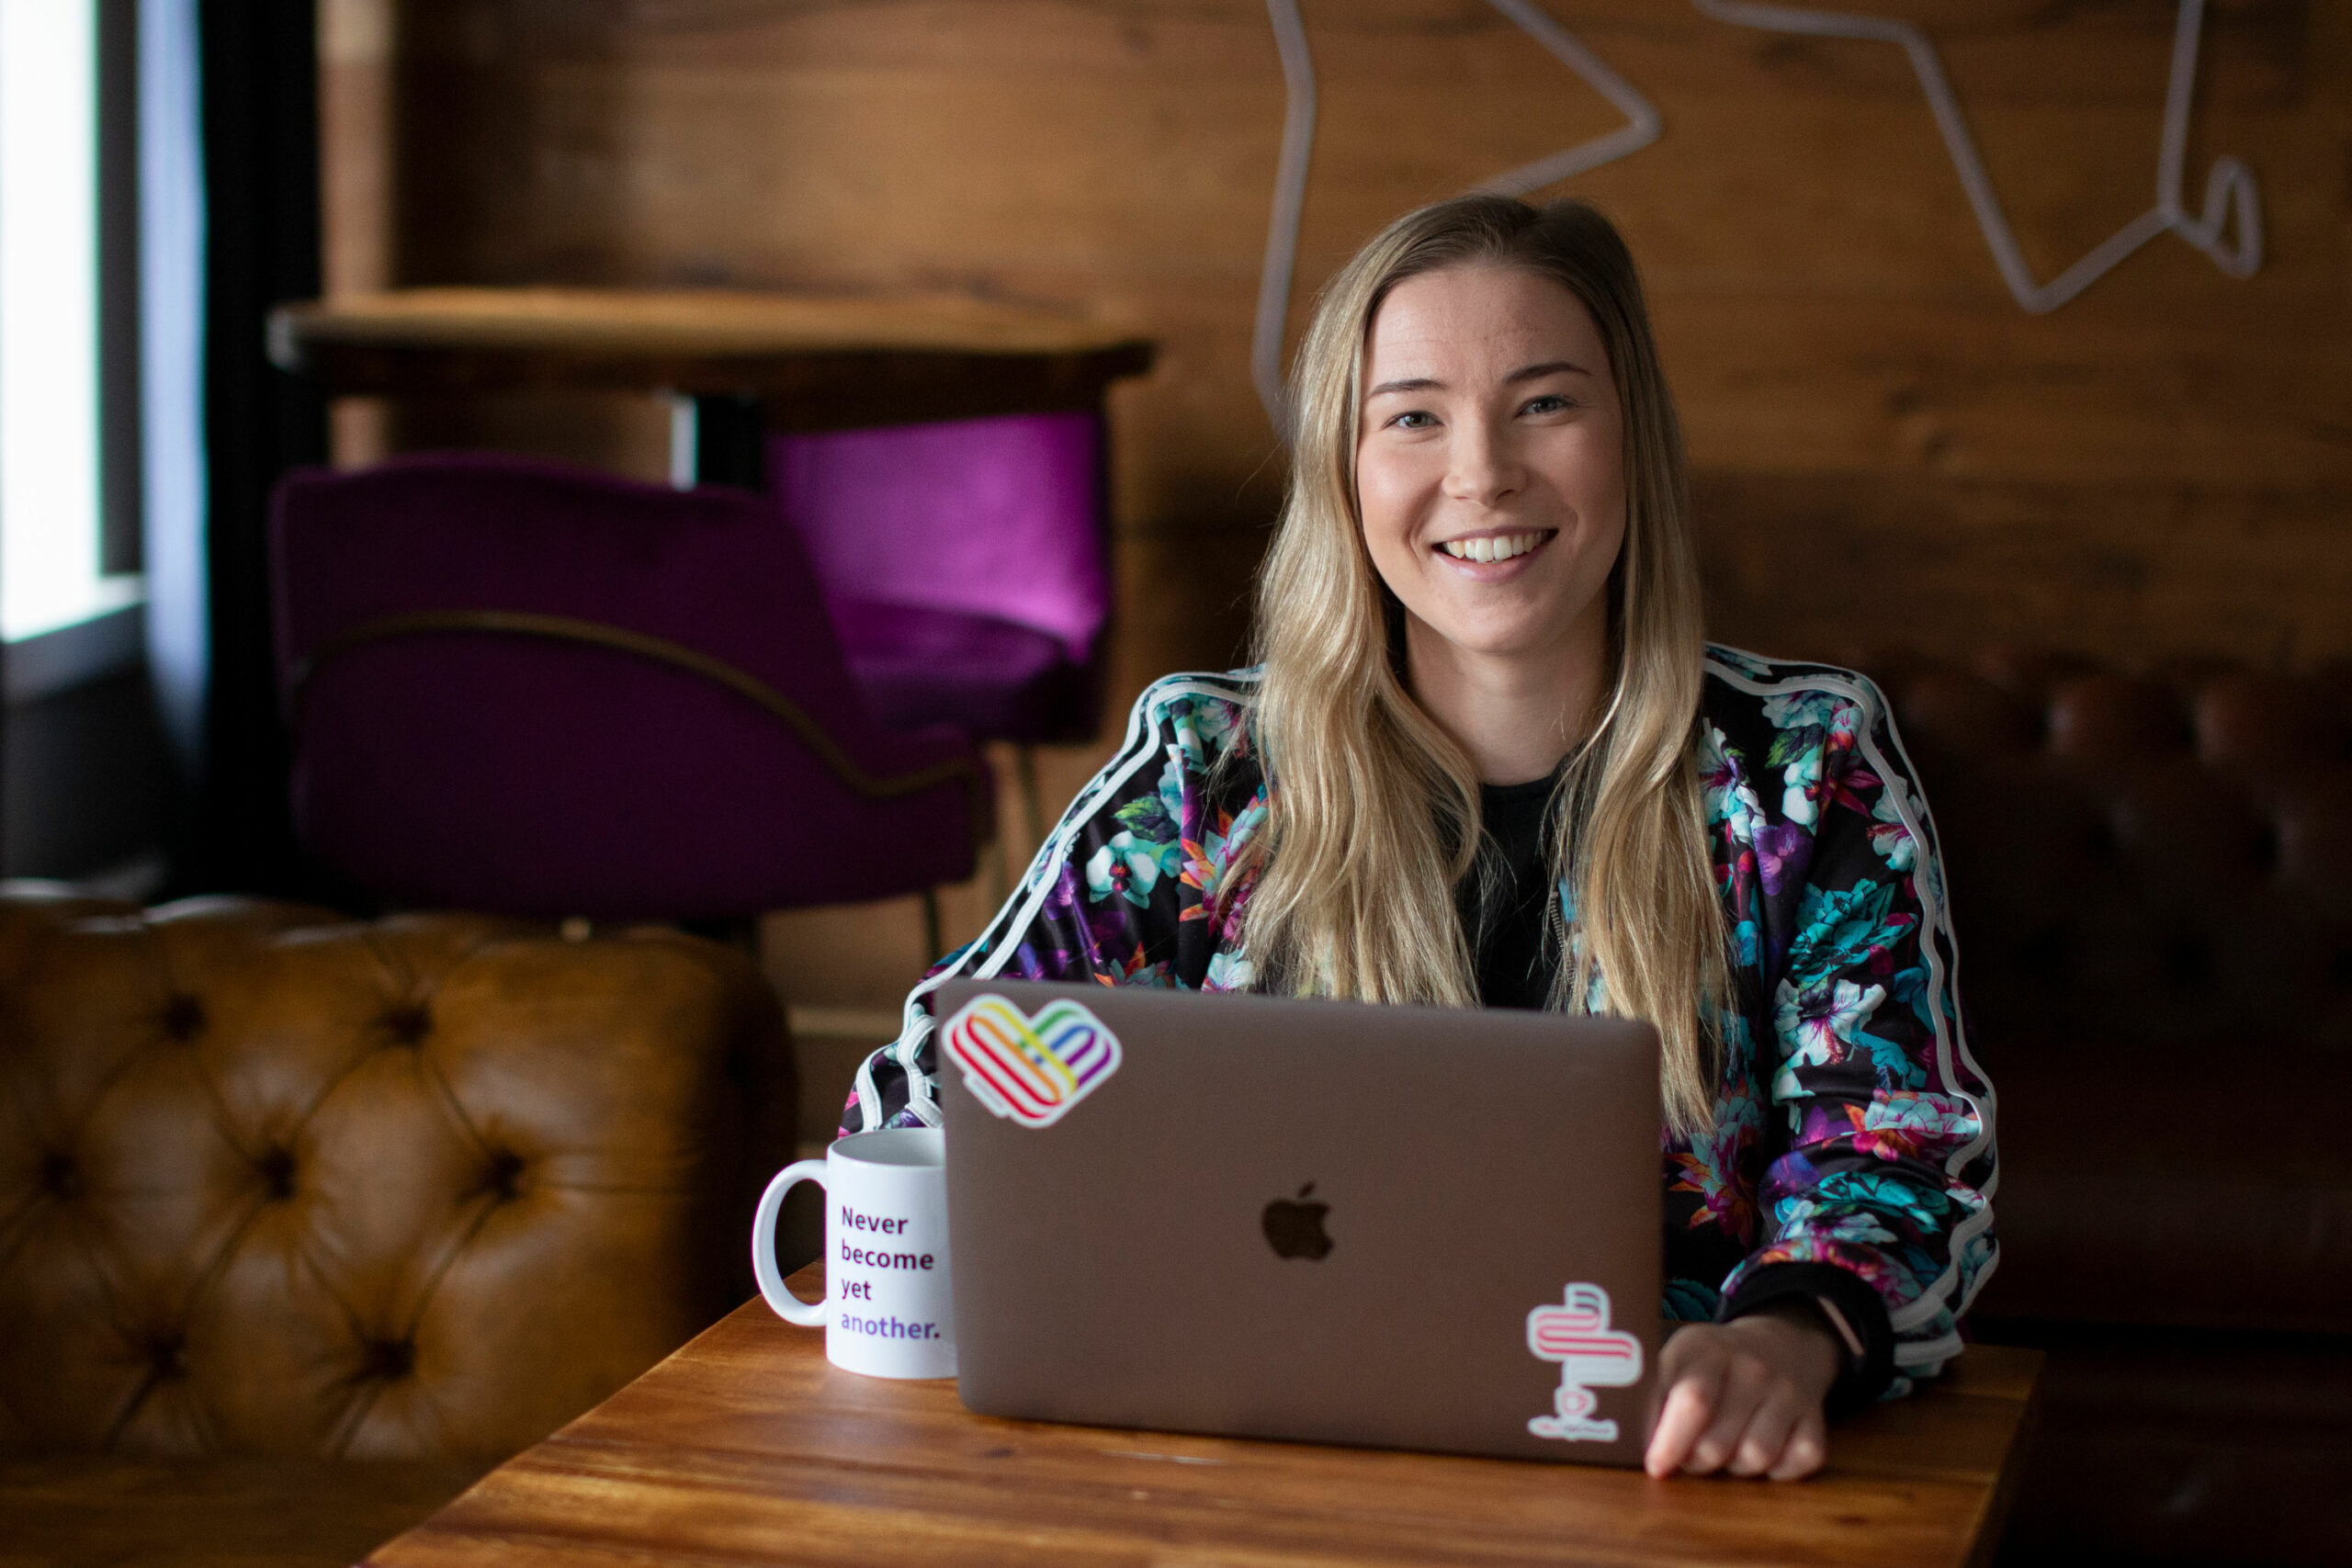 UpCloud's Digital marketing manager Hanna Tuomisto